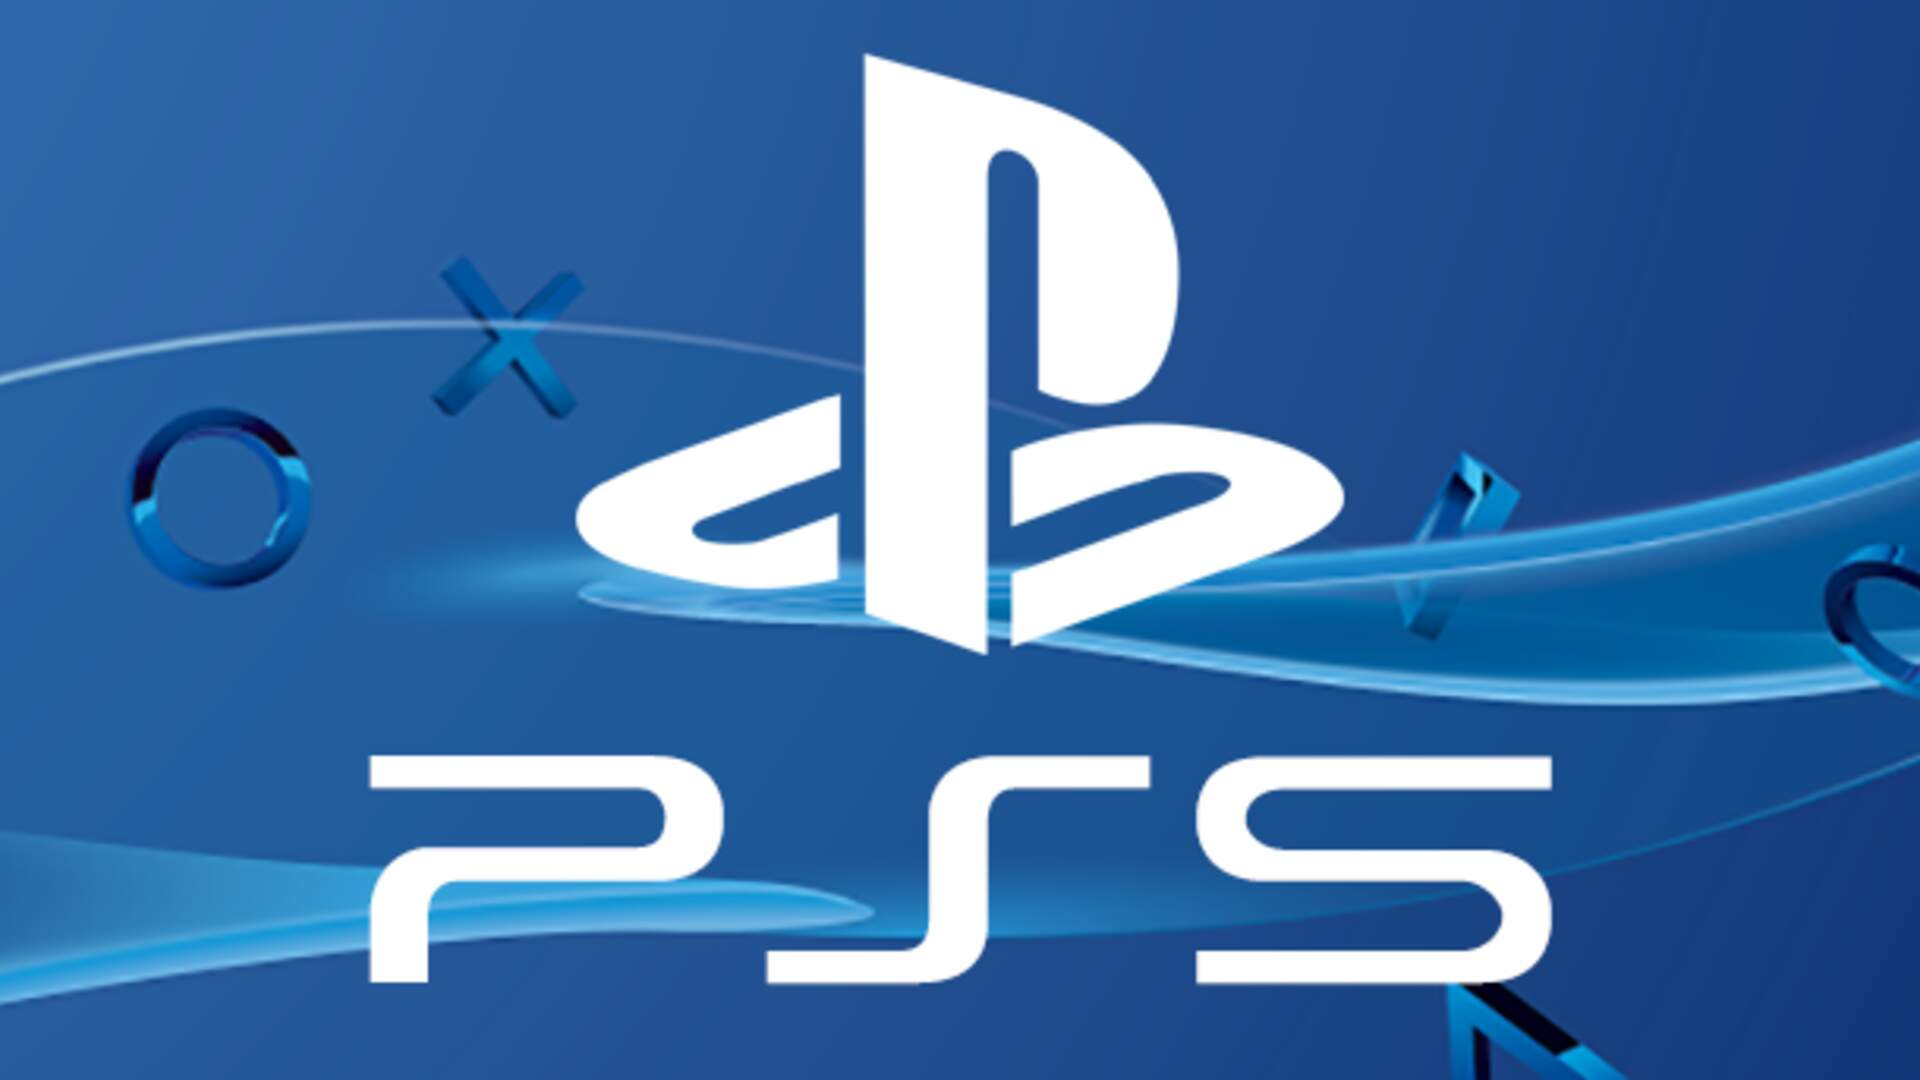 PlayStation CEO Says PS5 is Still Years Away